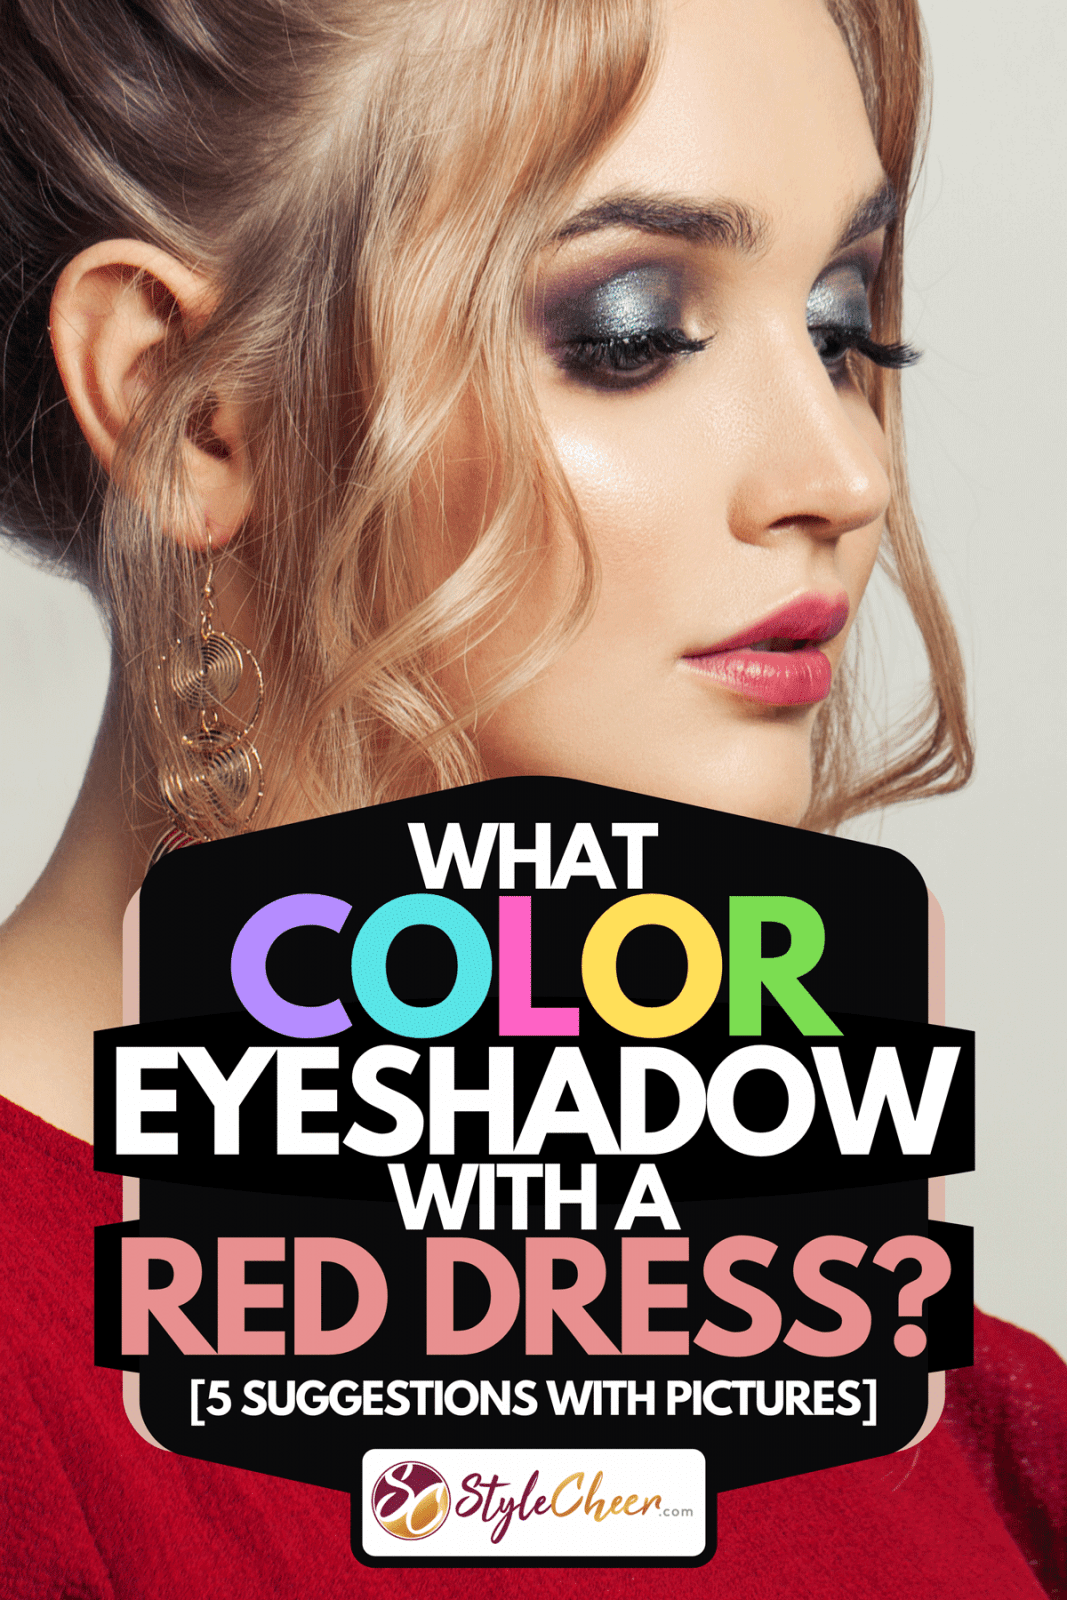 A beautiful model woman with trendy fashionable makeup wearing red dress, What Color Eyeshadow With a Red Dress? [5 Suggestions with Pictures]